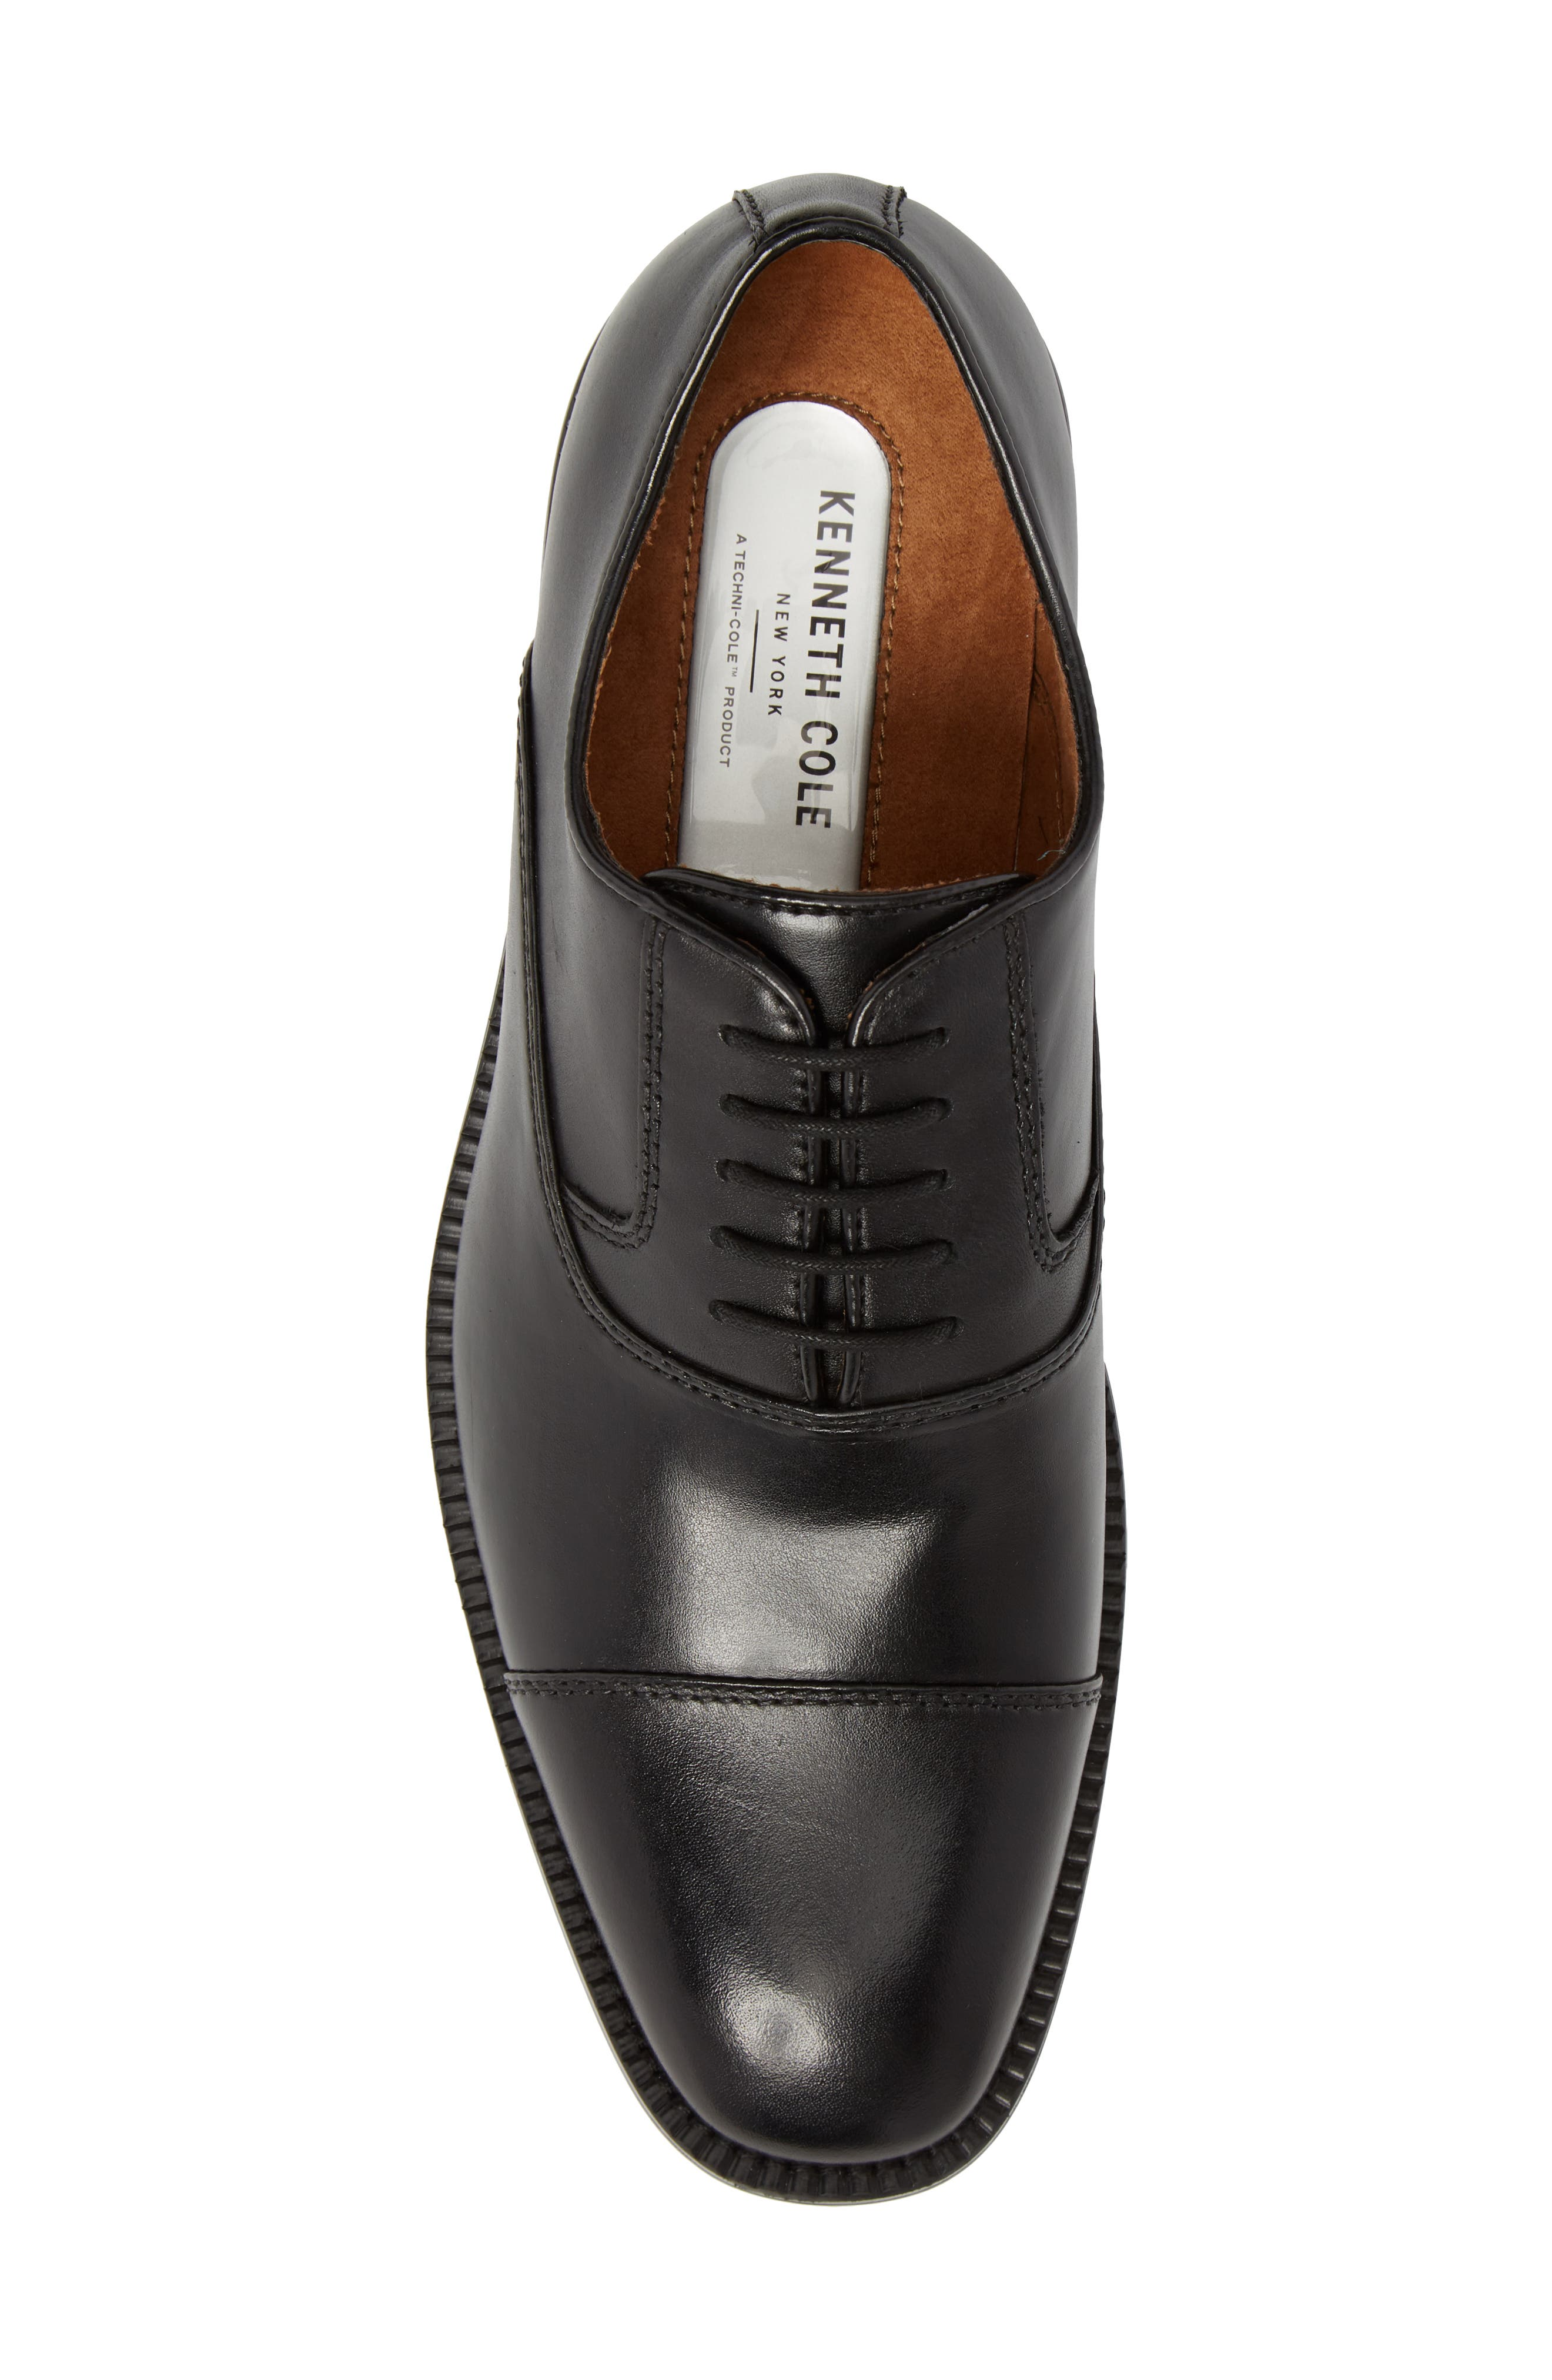 KENNETH COLE NEW YORK, Dice Cap Toe Oxford, Alternate thumbnail 5, color, BLACK LEATHER